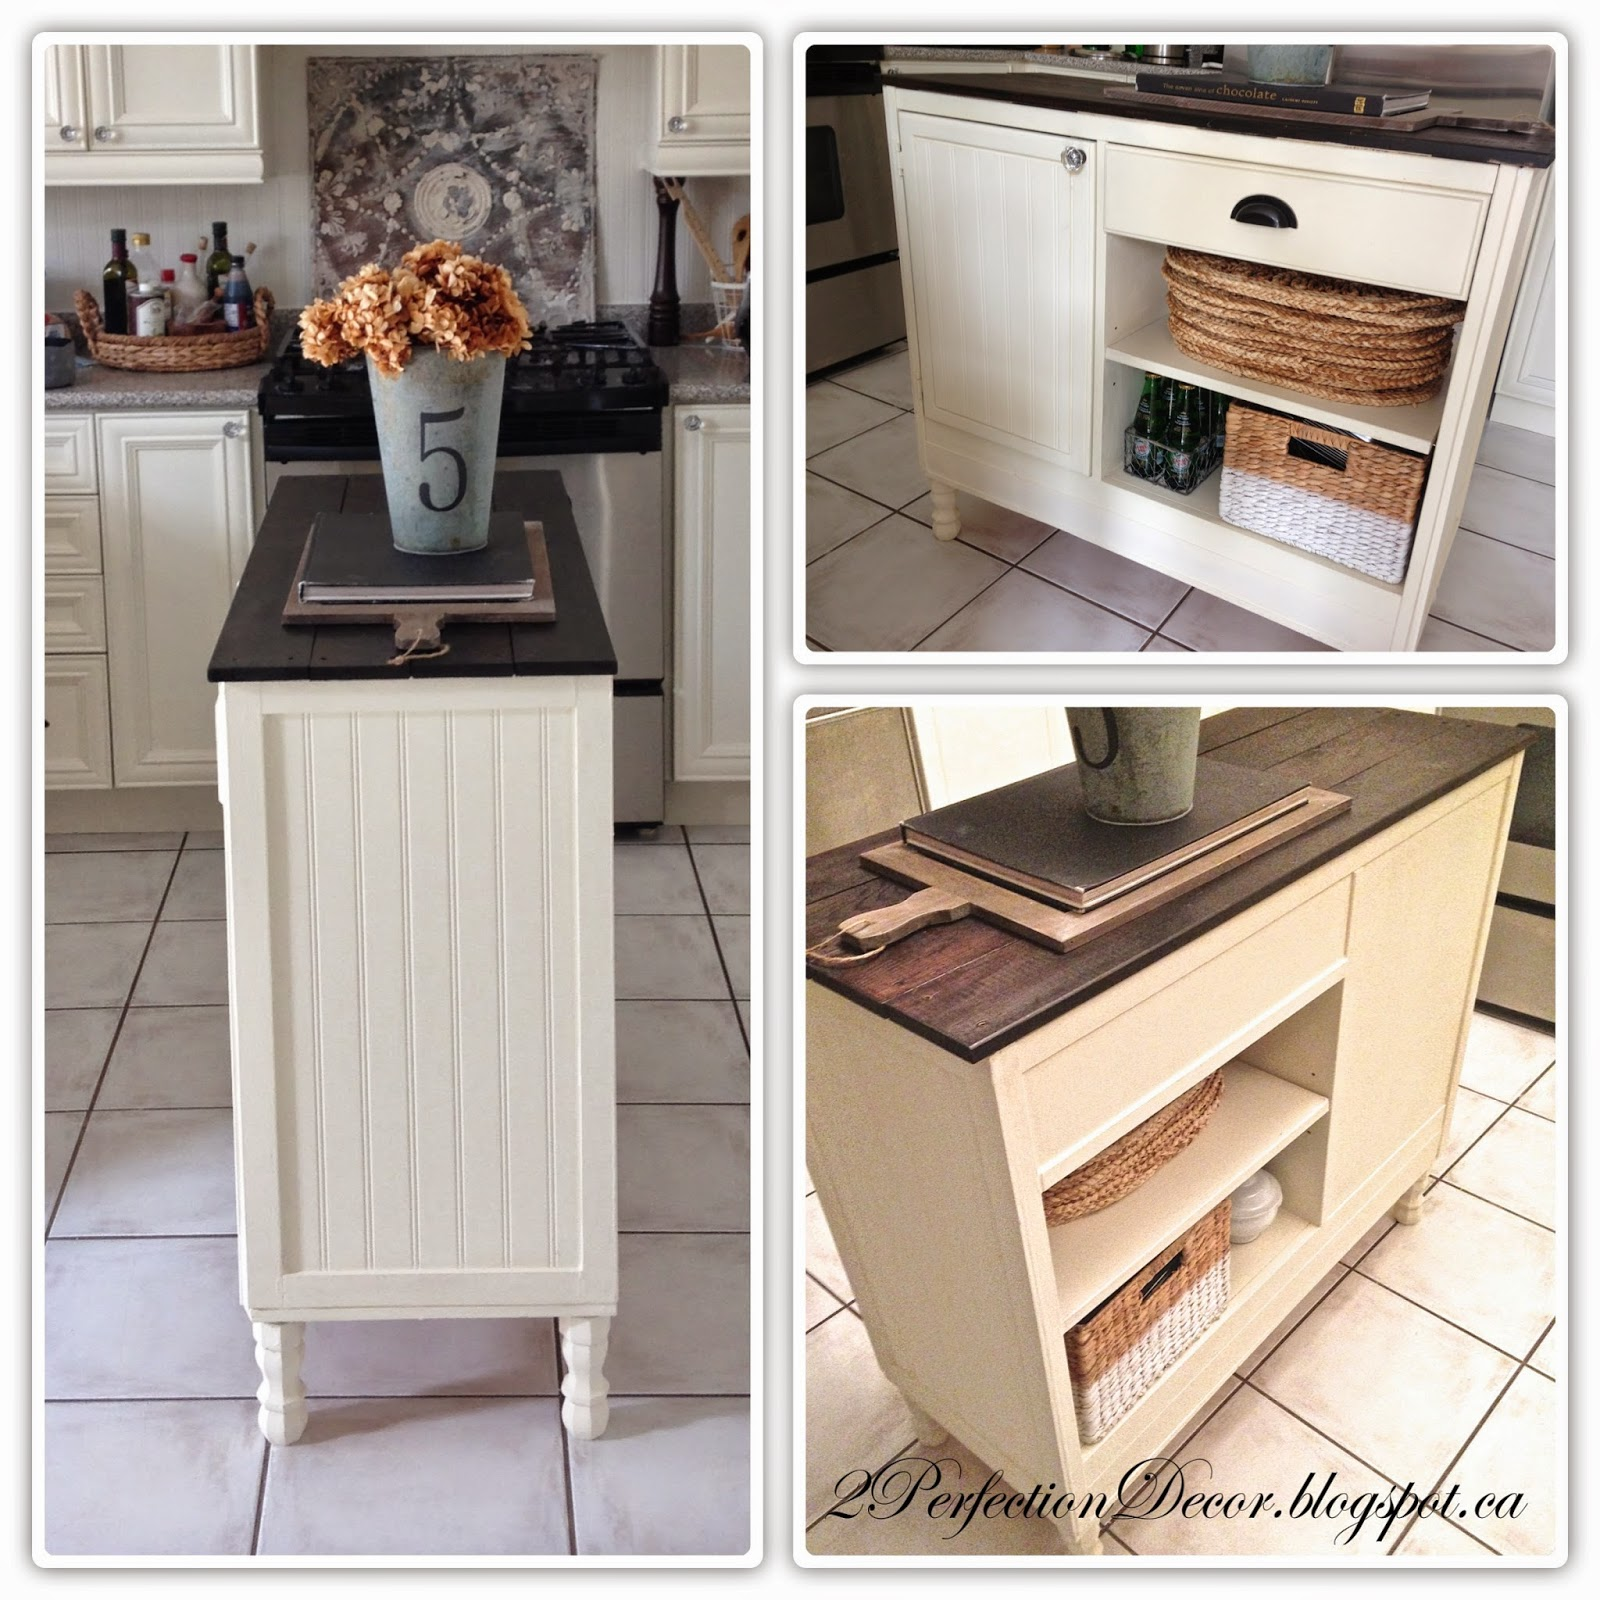 Kitchen Console Vent 2perfection Decor How To Transform A Vintage Desk Into Overpower Our Plus It Allows For Added Storage Which We So Needed The Cabinet Holds Pots And Drawer All Cutting Boards